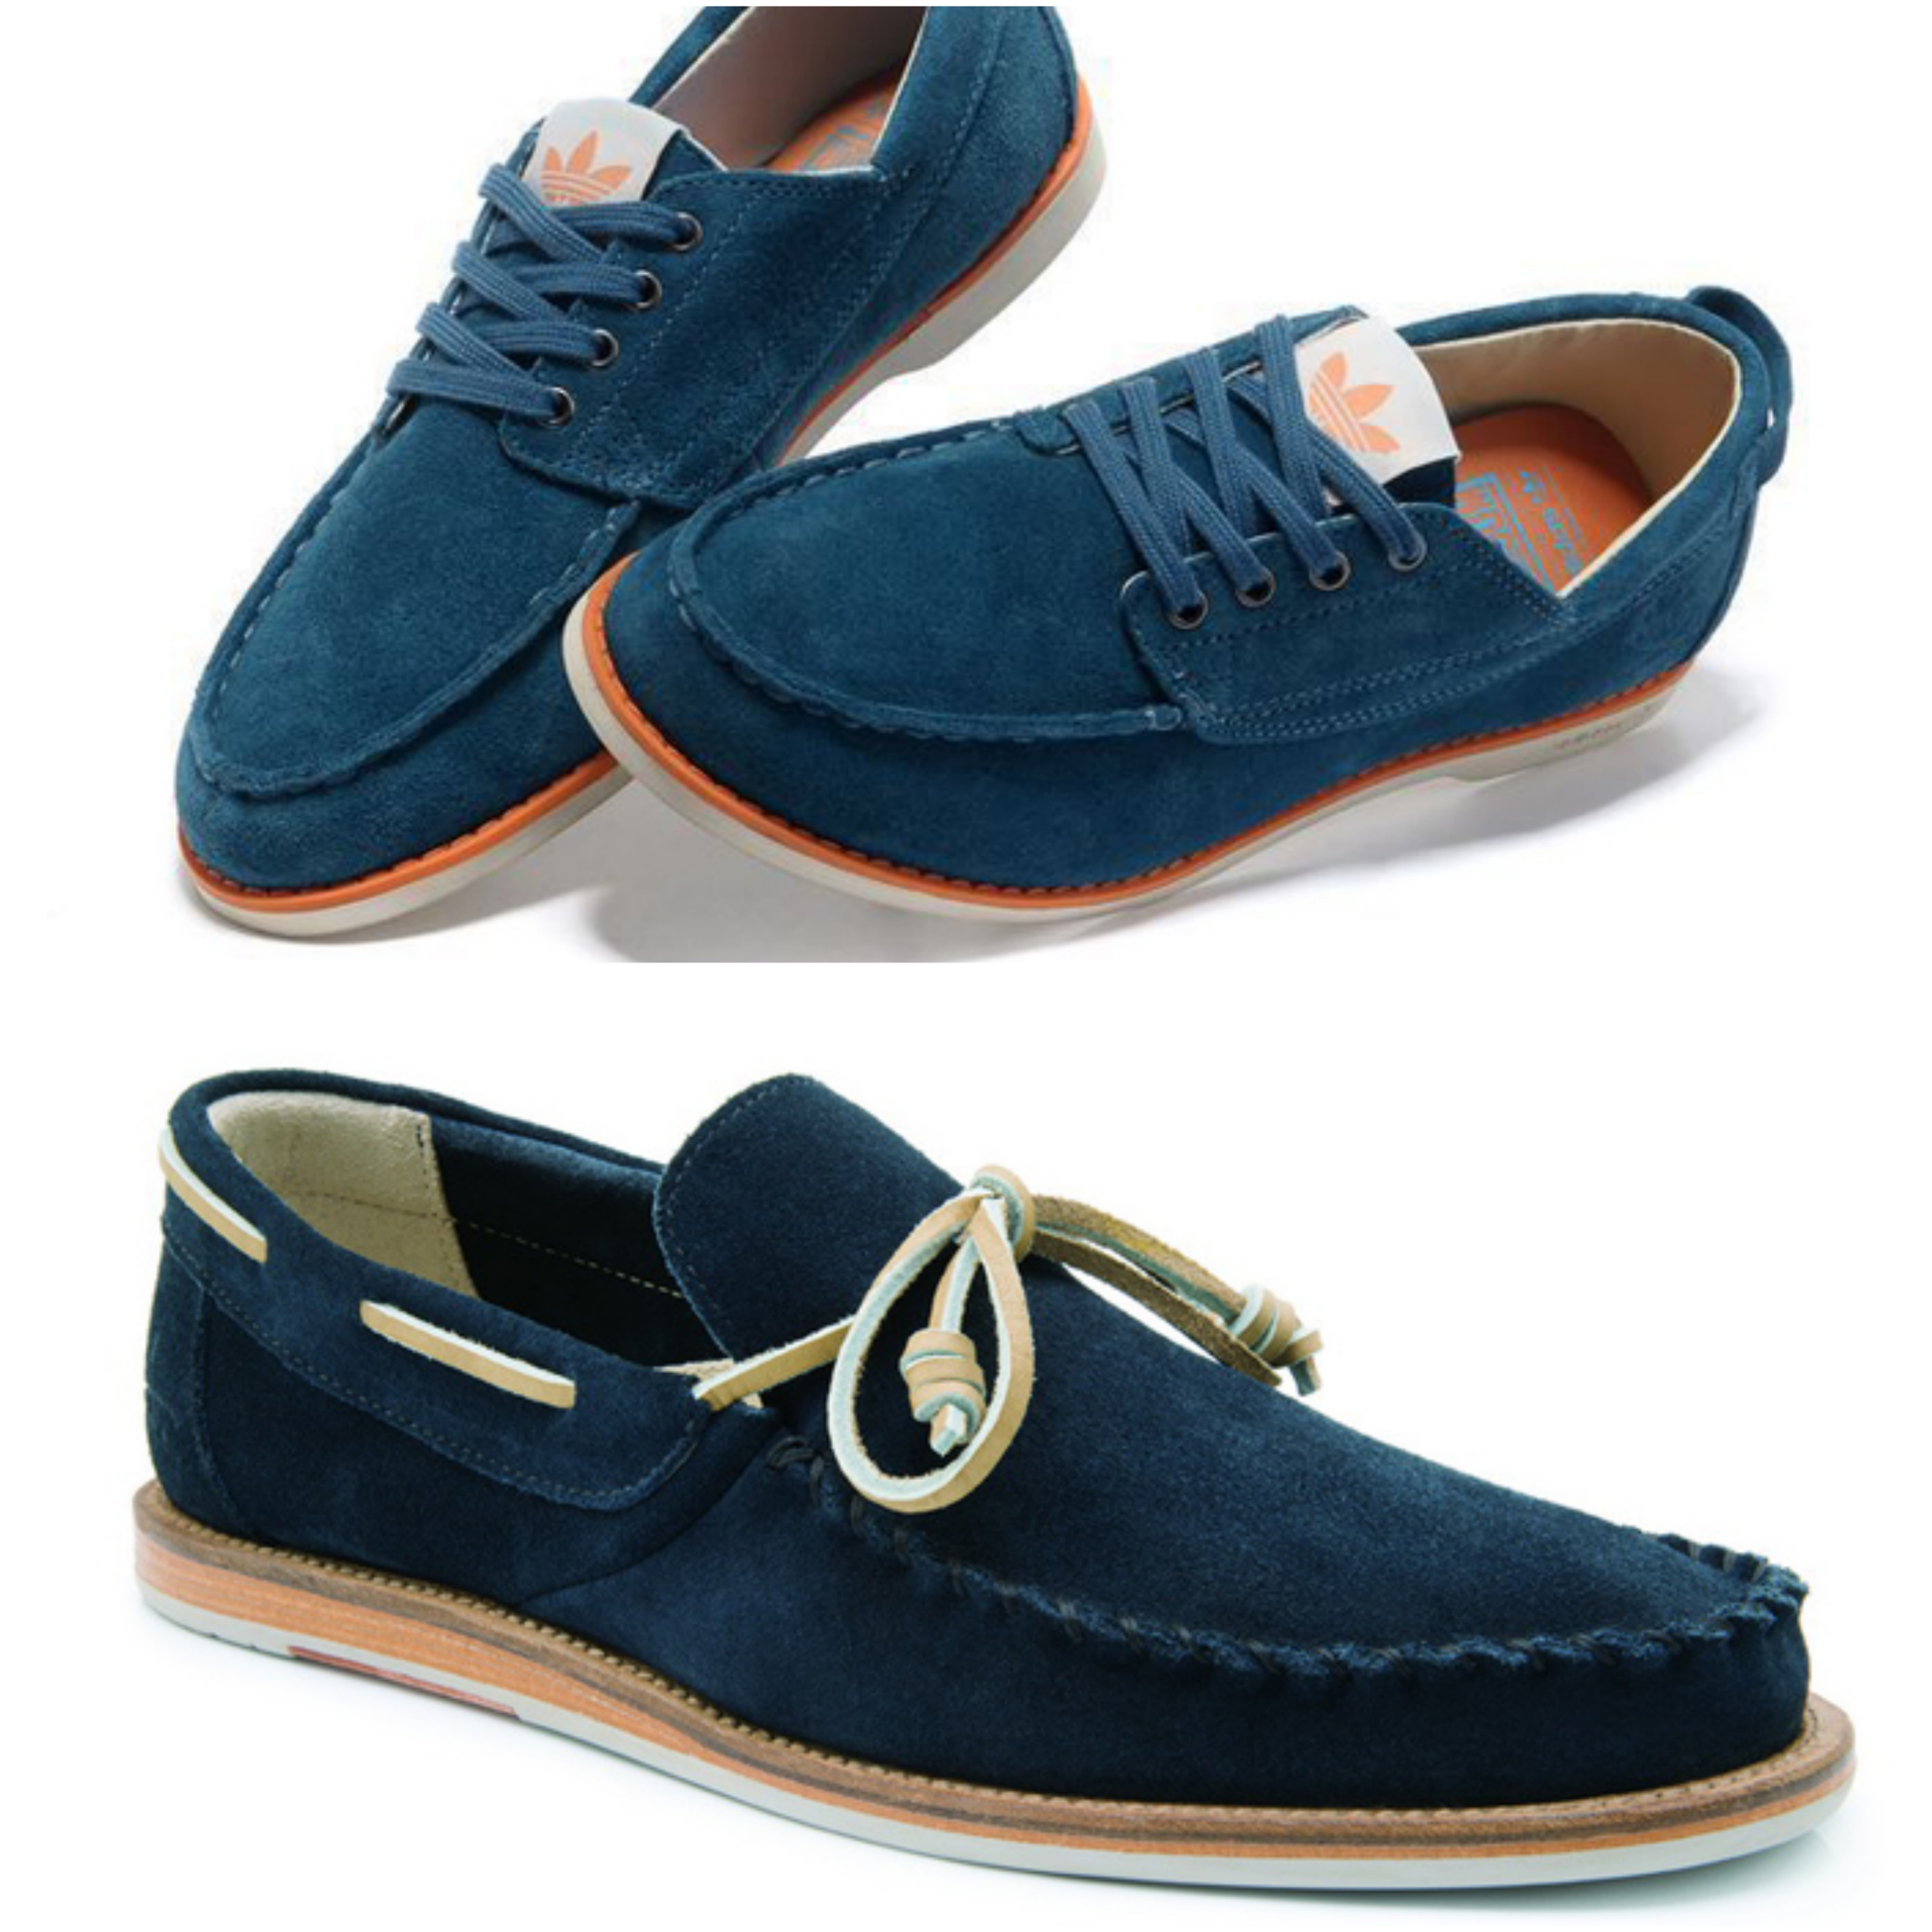 Shoes For Casual Wearing Mens Collection 2015/2016 | Stylo Planet